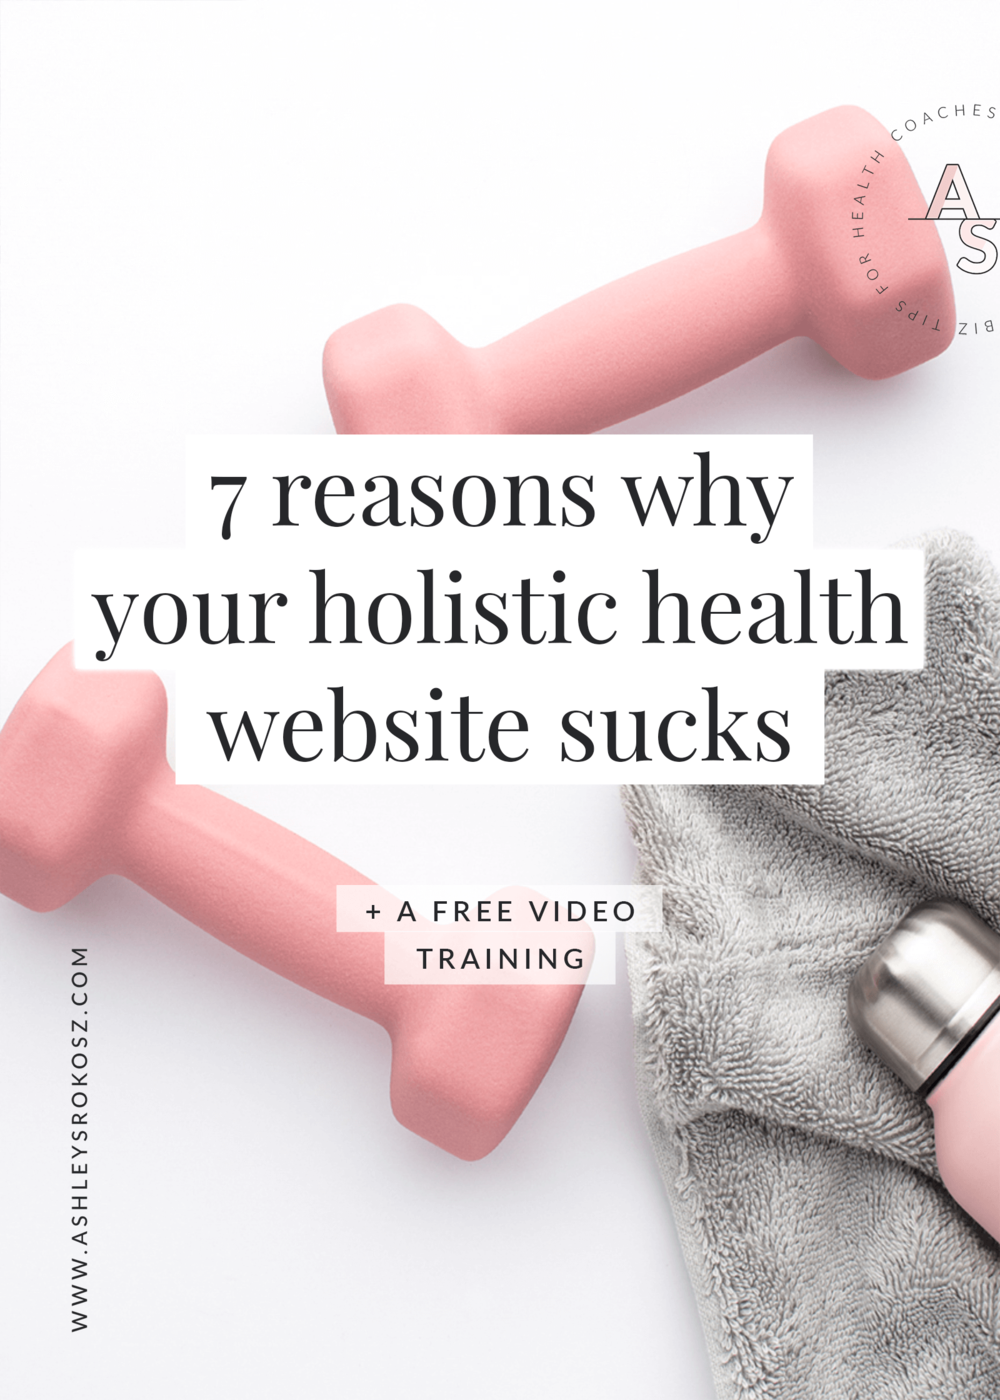 Is your holistic health website finding you paying clients? Because it should be! Click here to find out 7 reasons why your holistic health website sucks and how you can fix them. Plus there's a free video training showing you how you can use your website to find paying clients as a holistic health coach, nutritionist, yoga teacher, essential oil advocate, chiropractor, or naturopath!